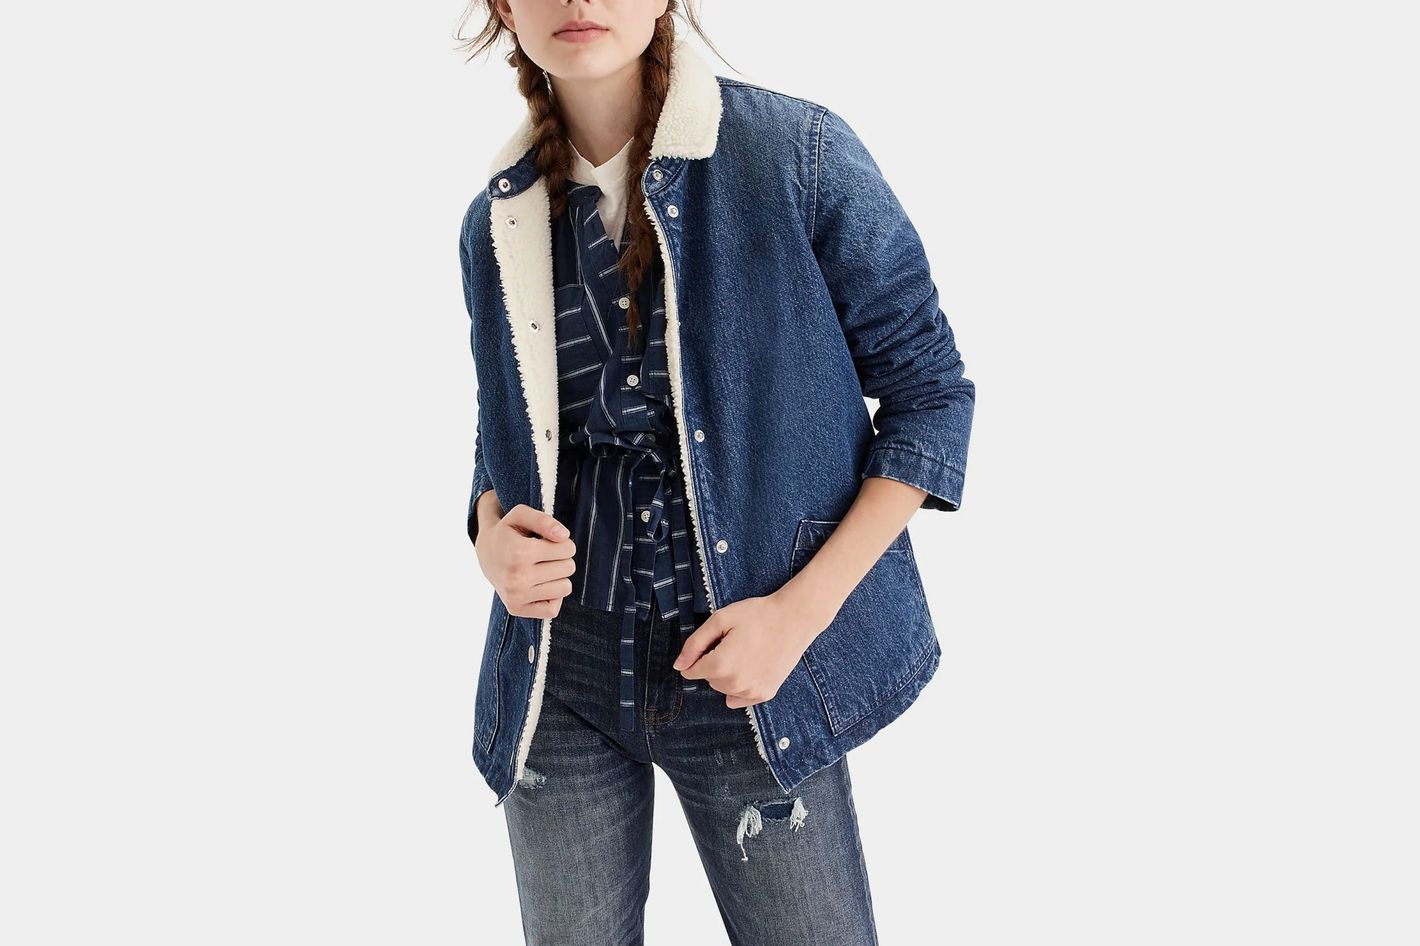 J.Crew Denim Sherpa Swing Jacket